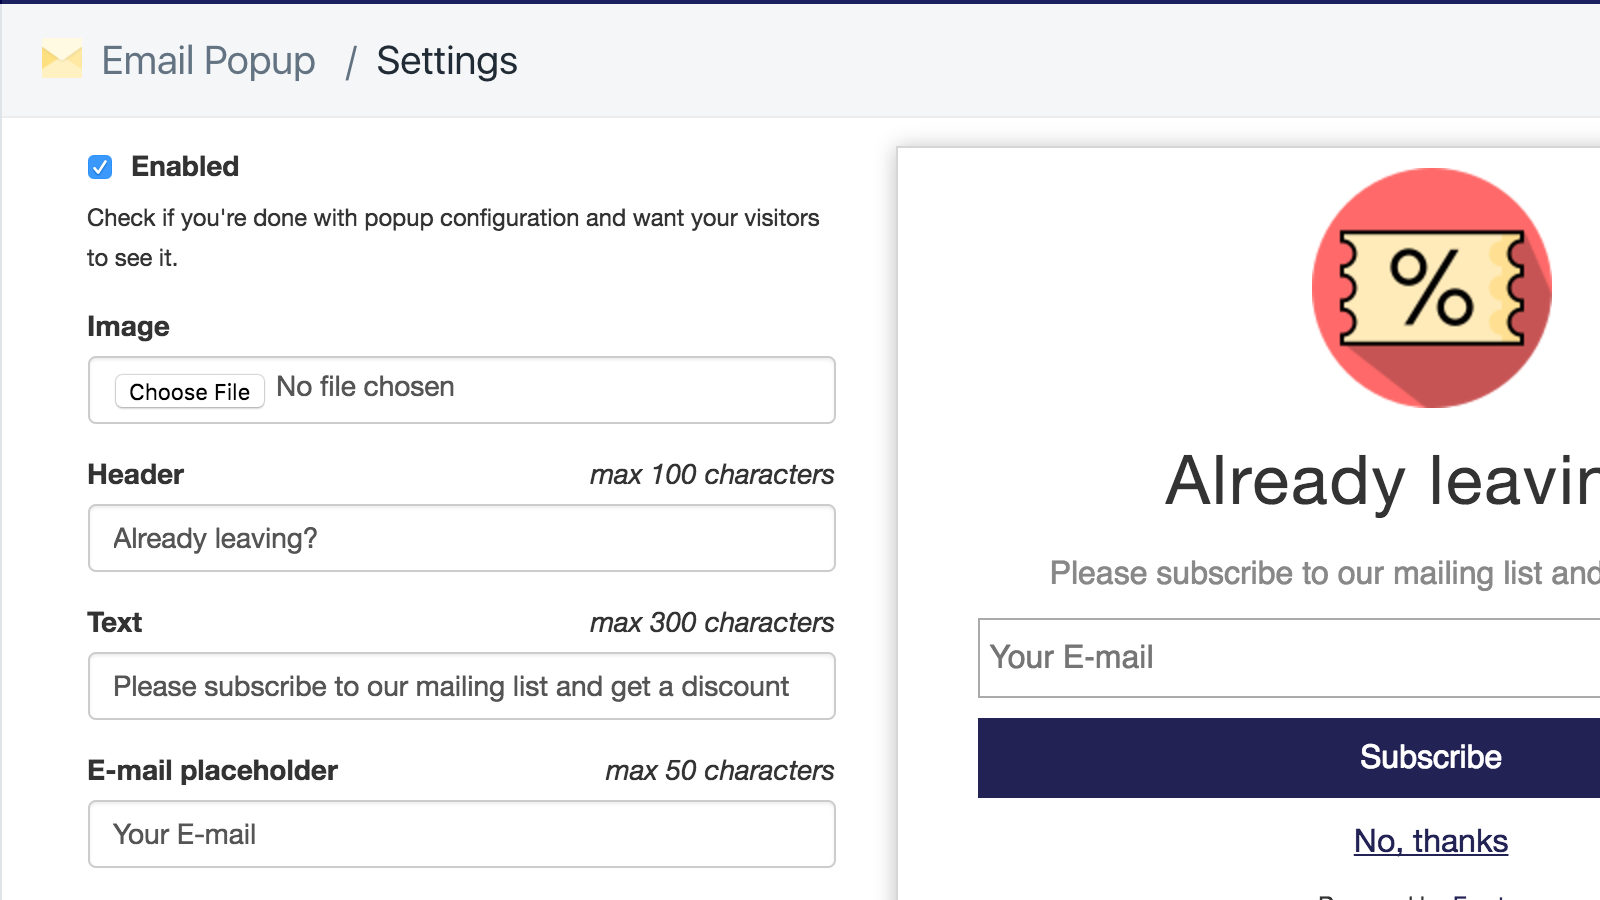 email popup settings